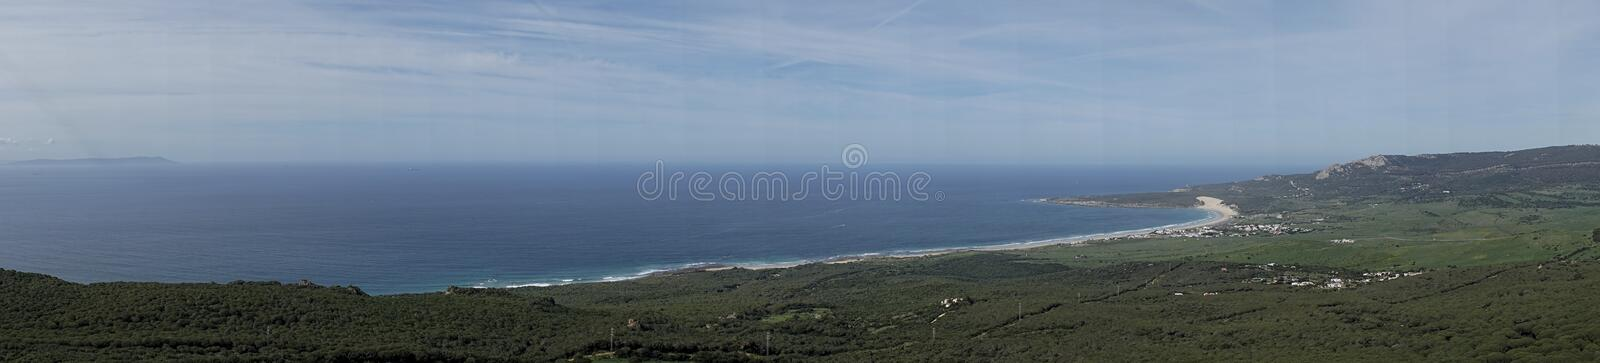 Beautiful unspoiled beach of the Coast of Tarifa in the province of cadiz, andalusia, spain. Panoramic view of the coast of Bologna, Tarifa stock image